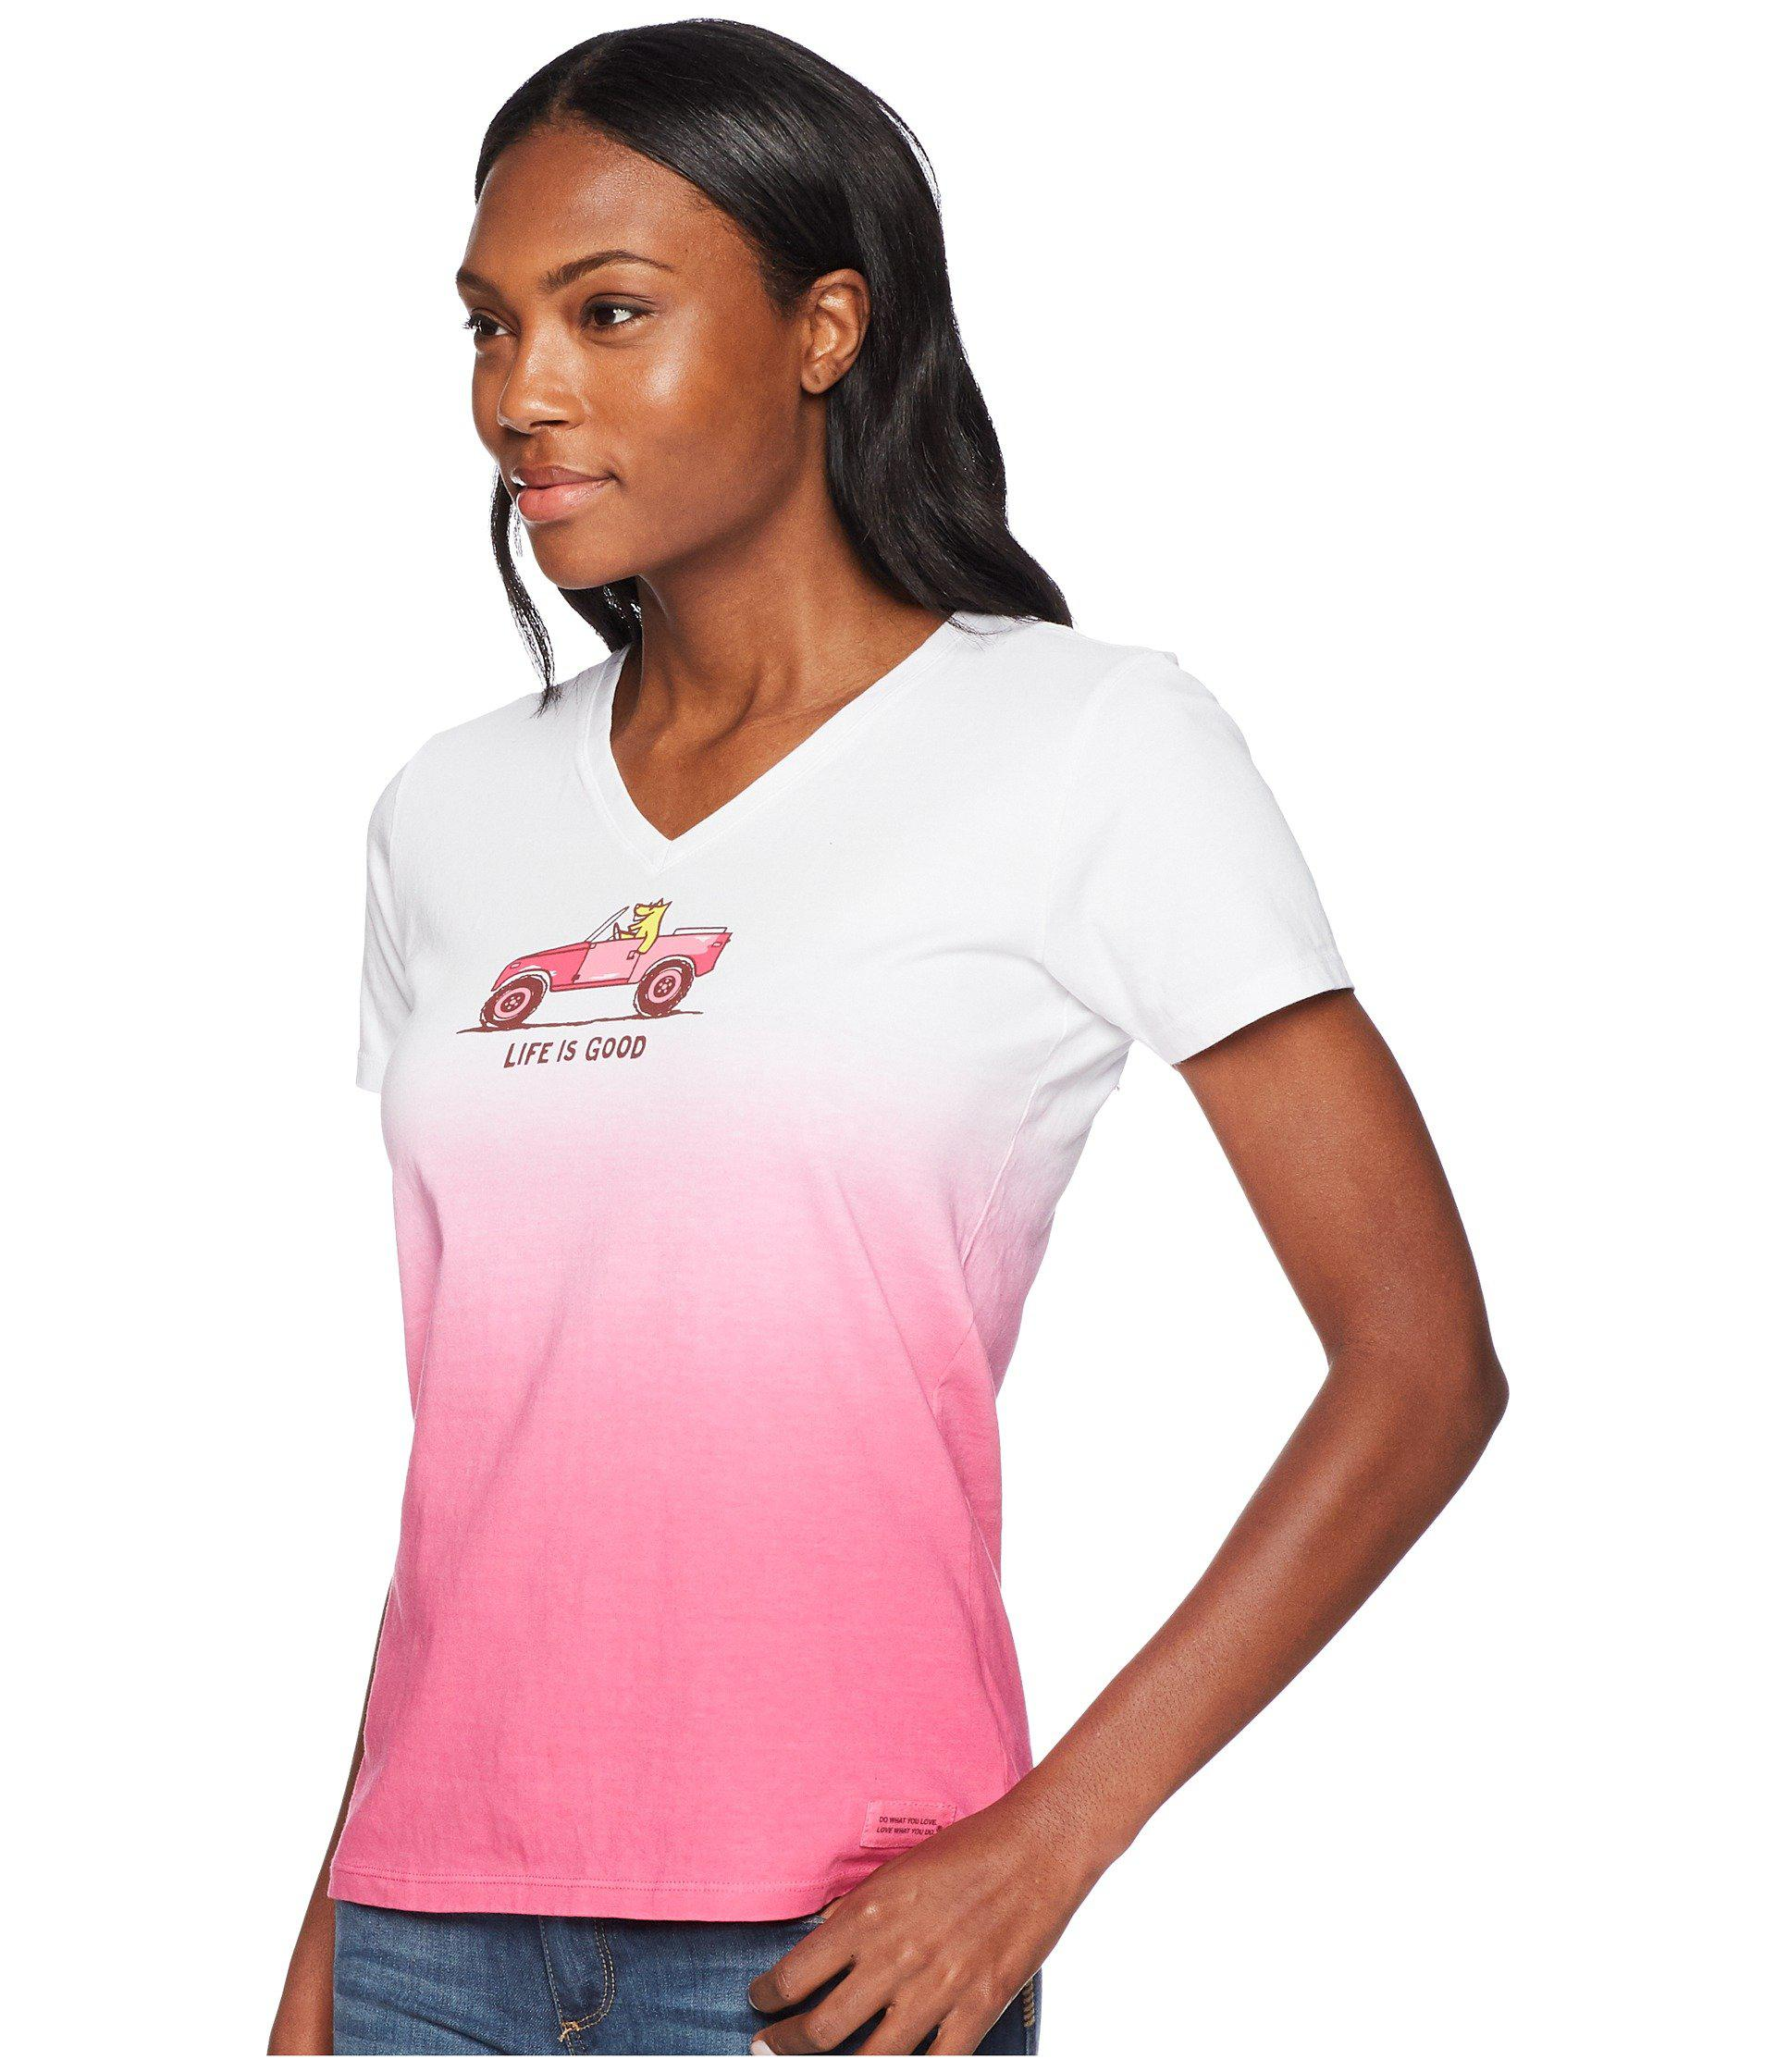 67c04c55e62 Lyst - Life Is Good. 4x4 Rocket Crusher Vee Tee in Pink - Save 21%